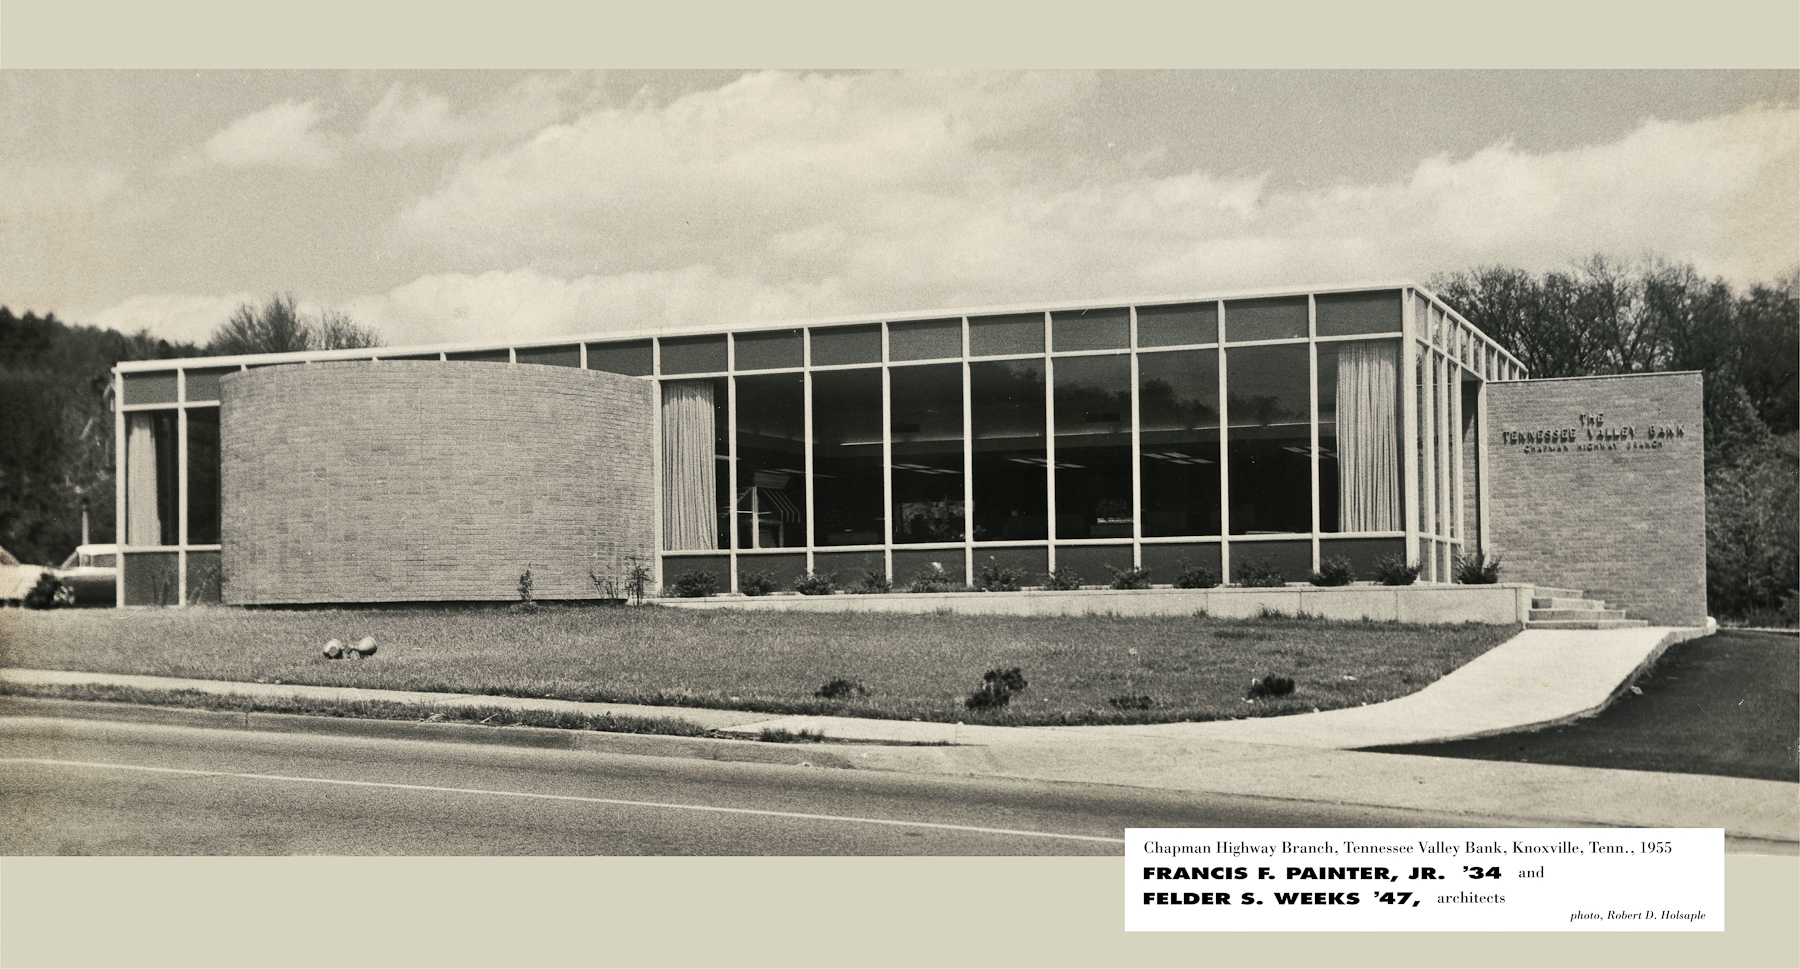 tn-knoxville-bank-by-painter-weeks-mccarty-1955-1